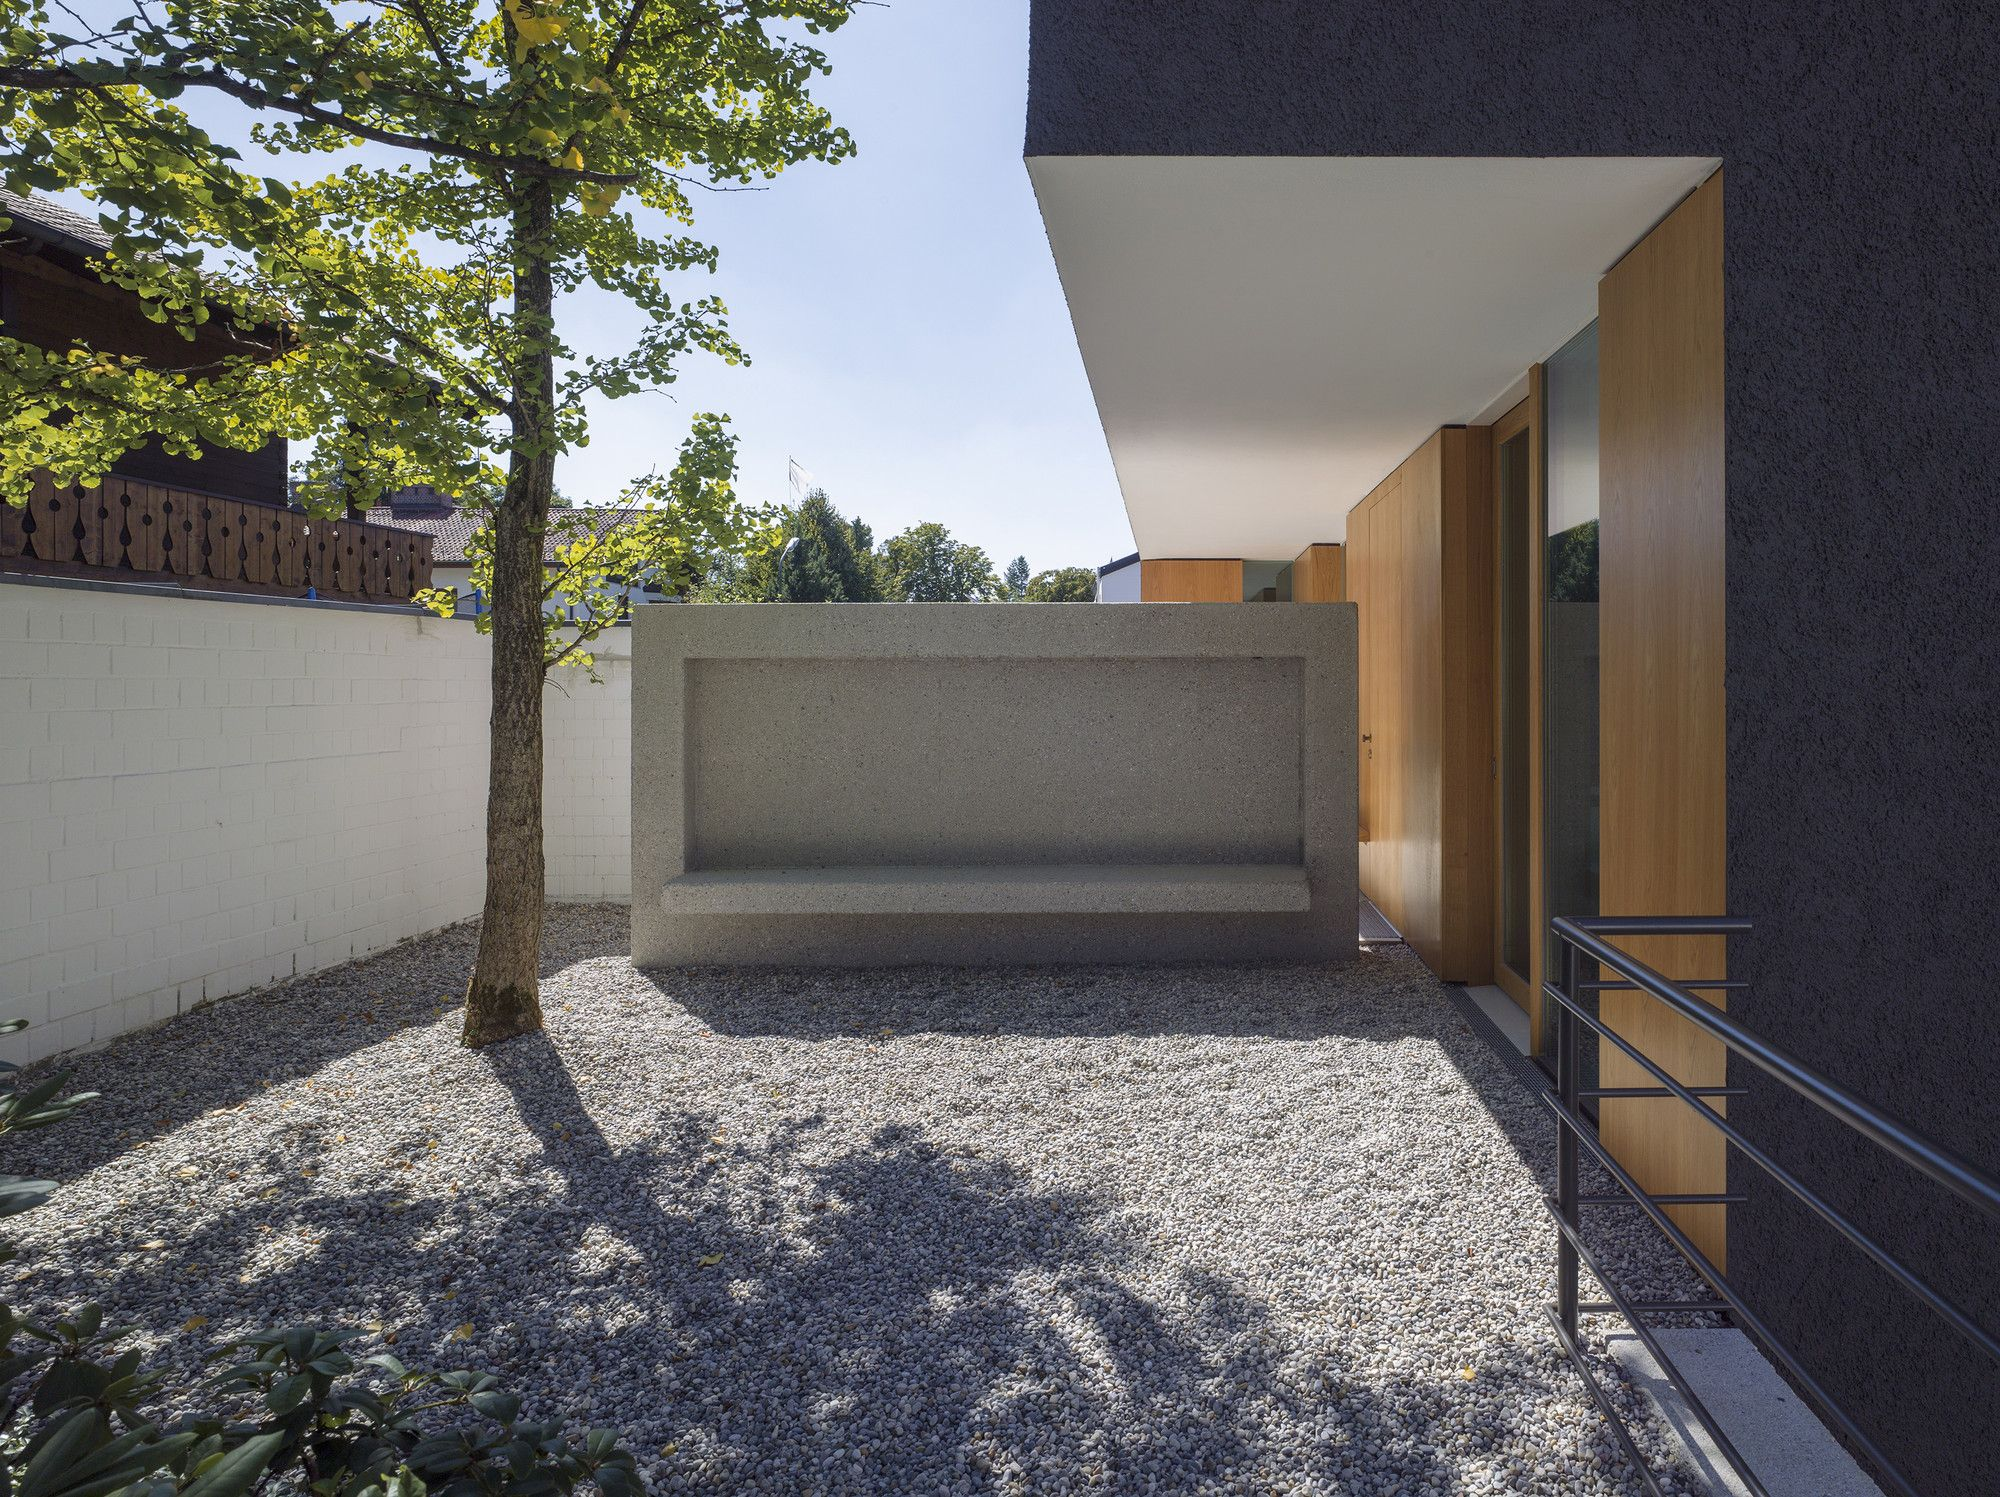 German Minimalistic House Brief Overview. Concrete austere bench satue in the backyard